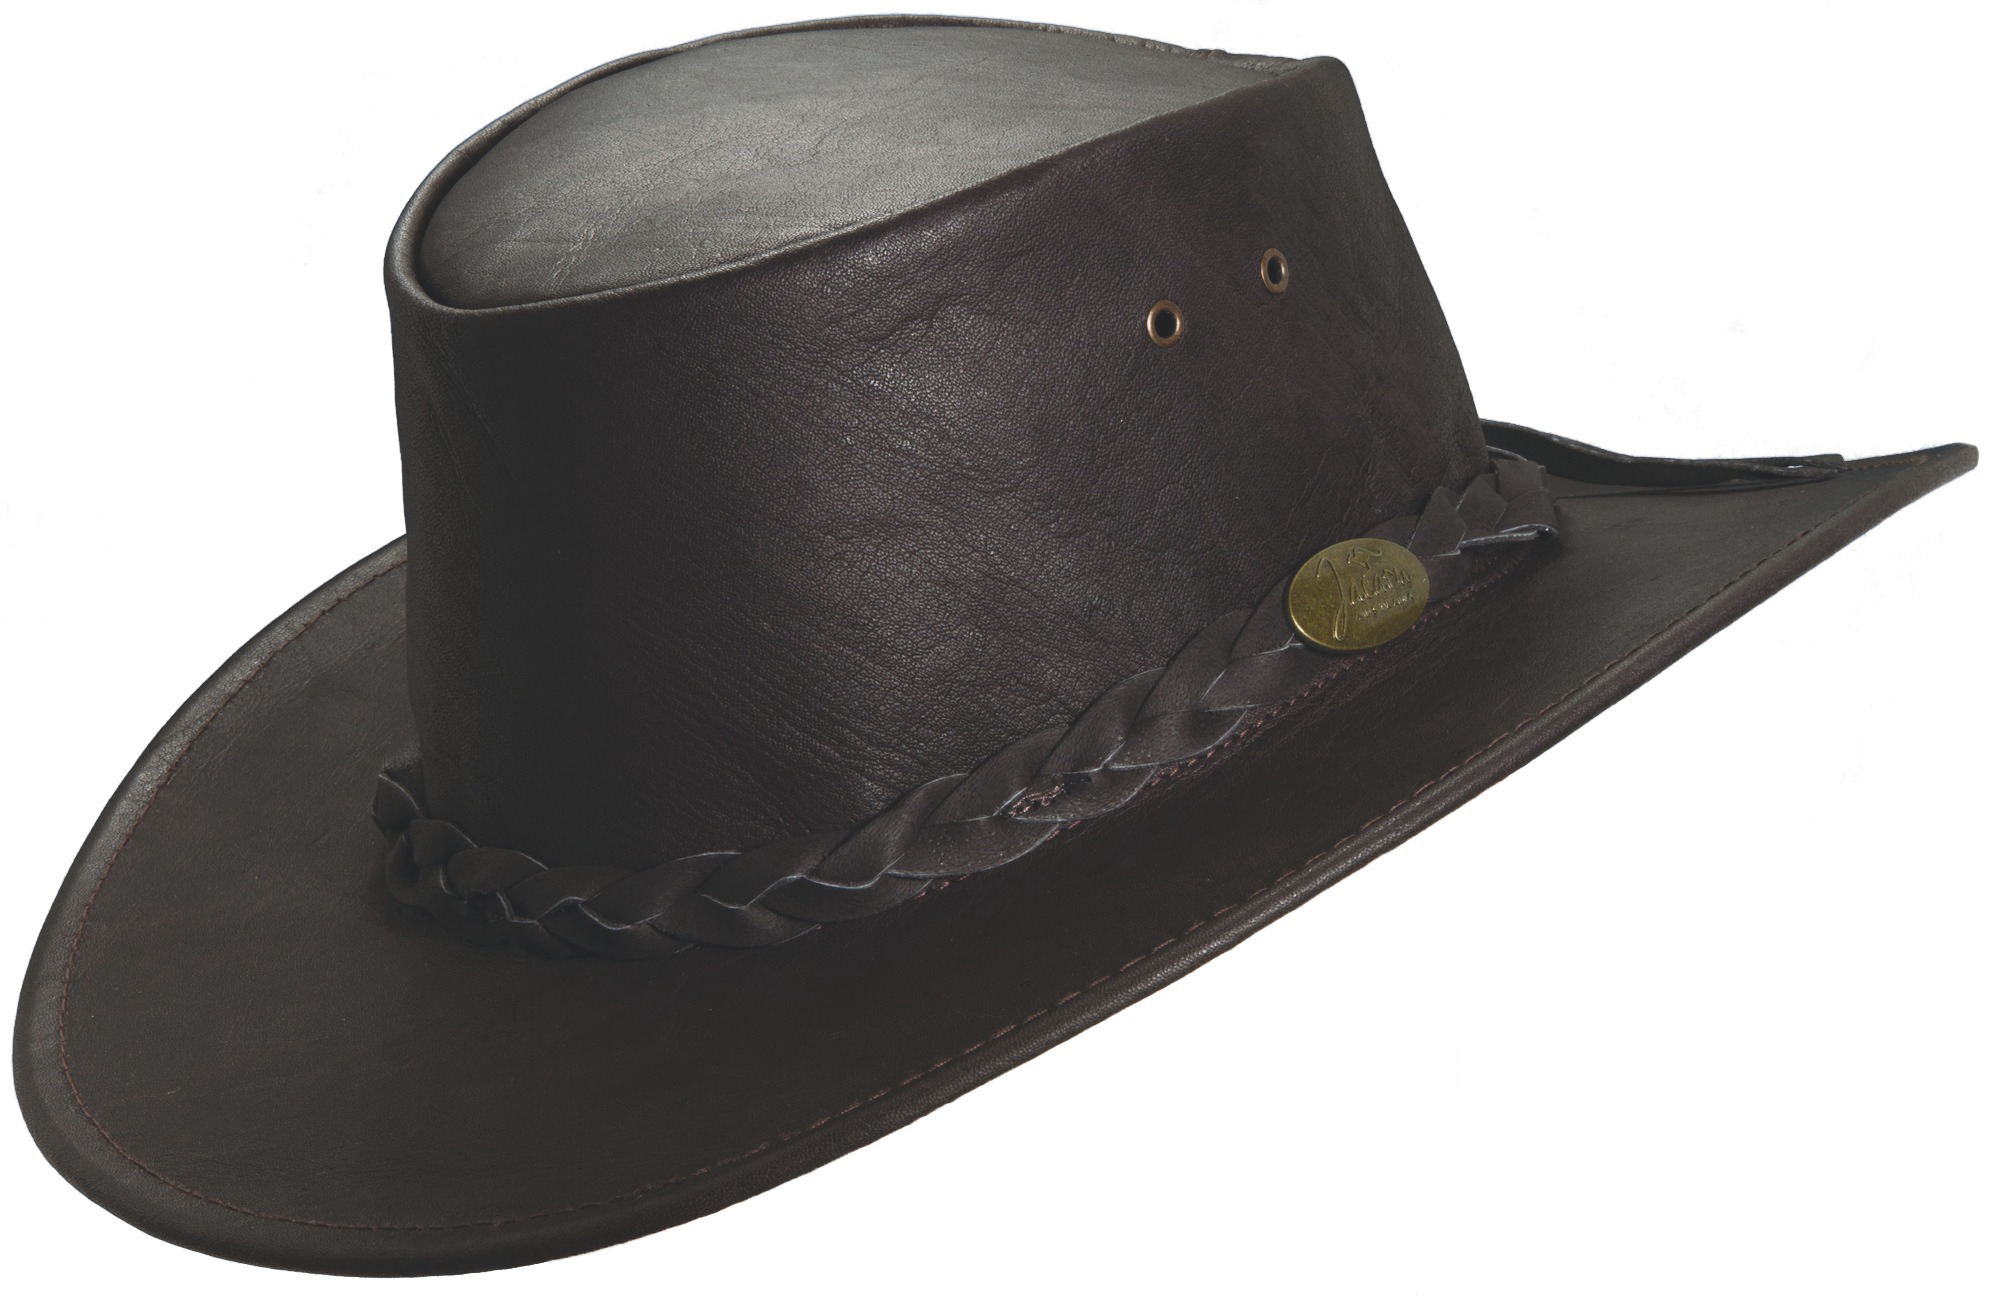 leather hats brown jacaru u0027kangaroou0027 leather hat frjvdtn